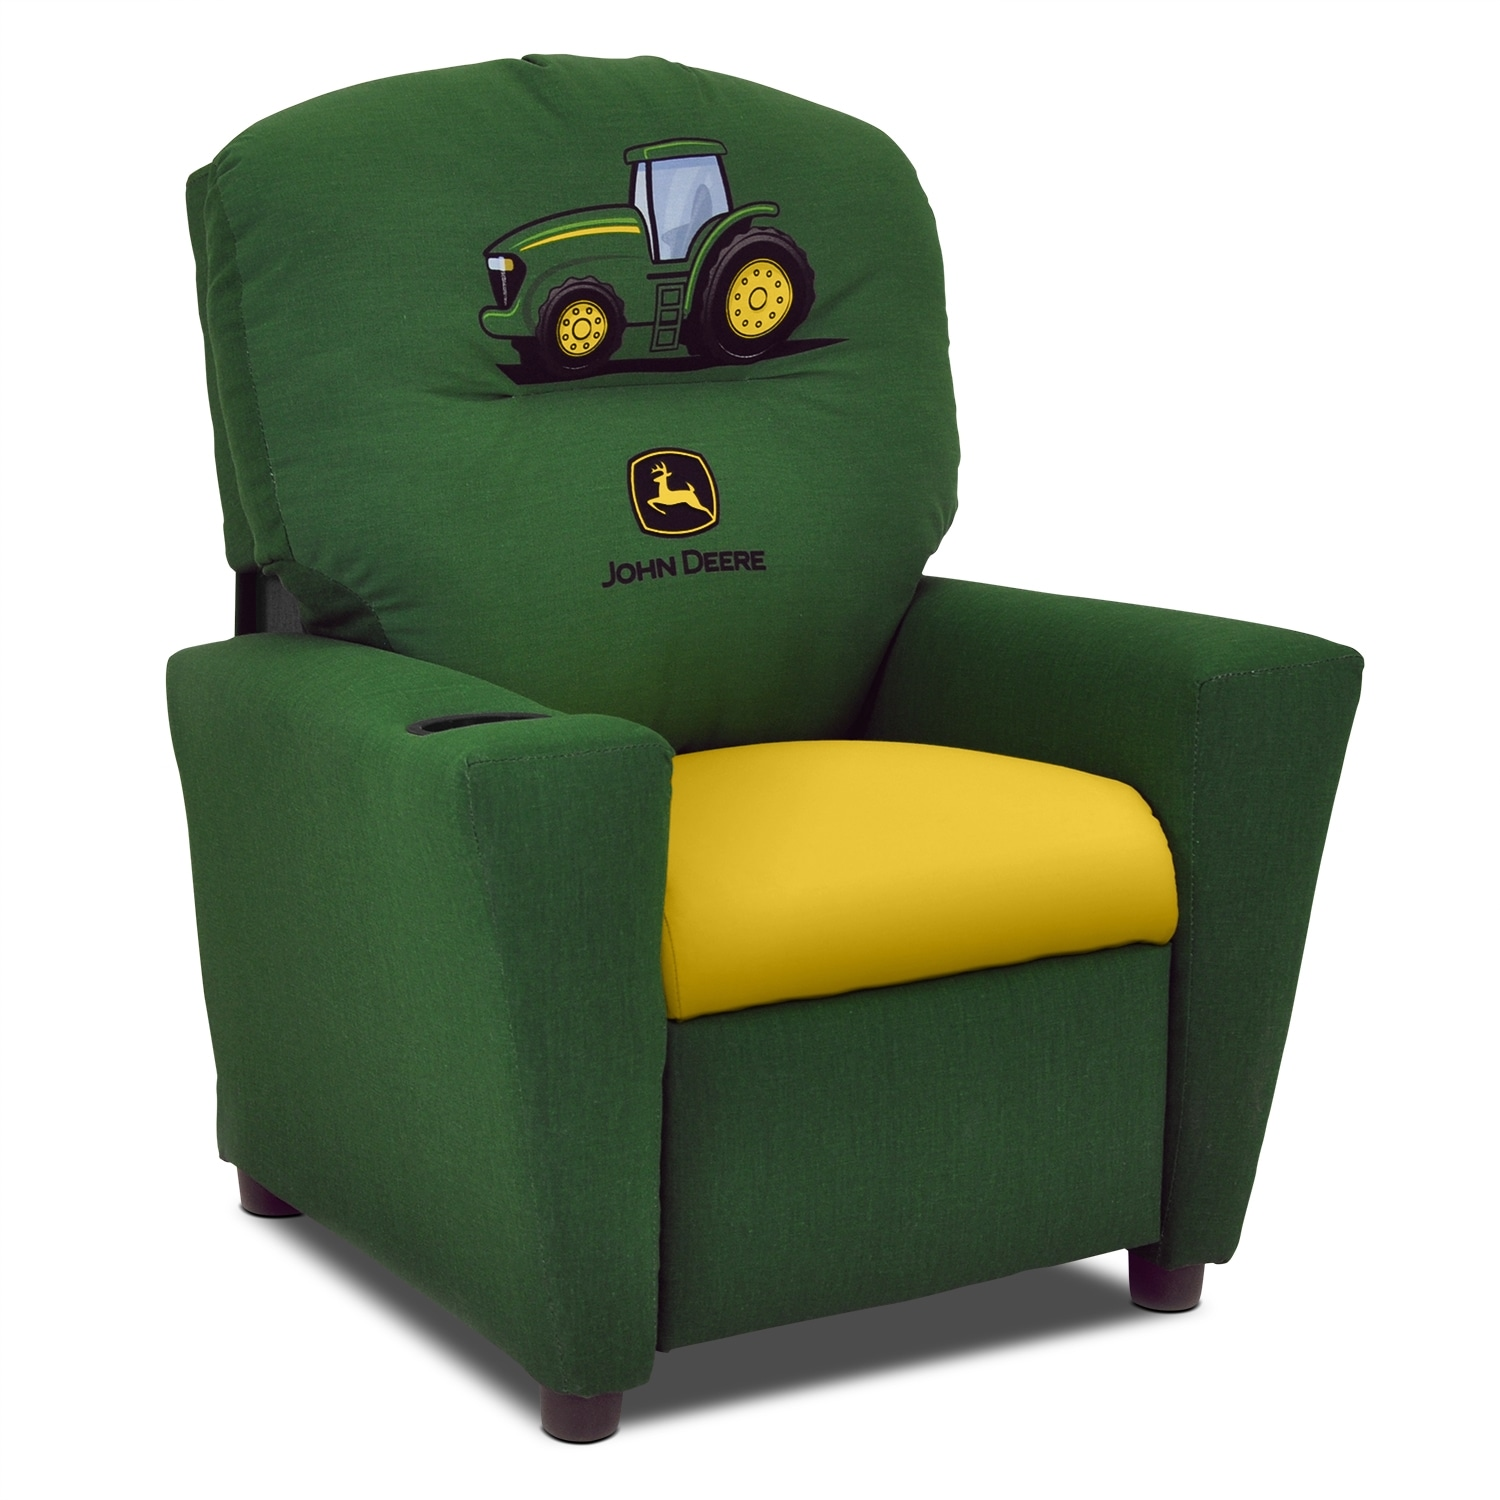 Kids Furniture - John Deere Childu0027s Recliner - Green. Hover to zoom  sc 1 st  Value City Furniture & John Deere Childu0027s Recliner - Green | Value City Furniture islam-shia.org